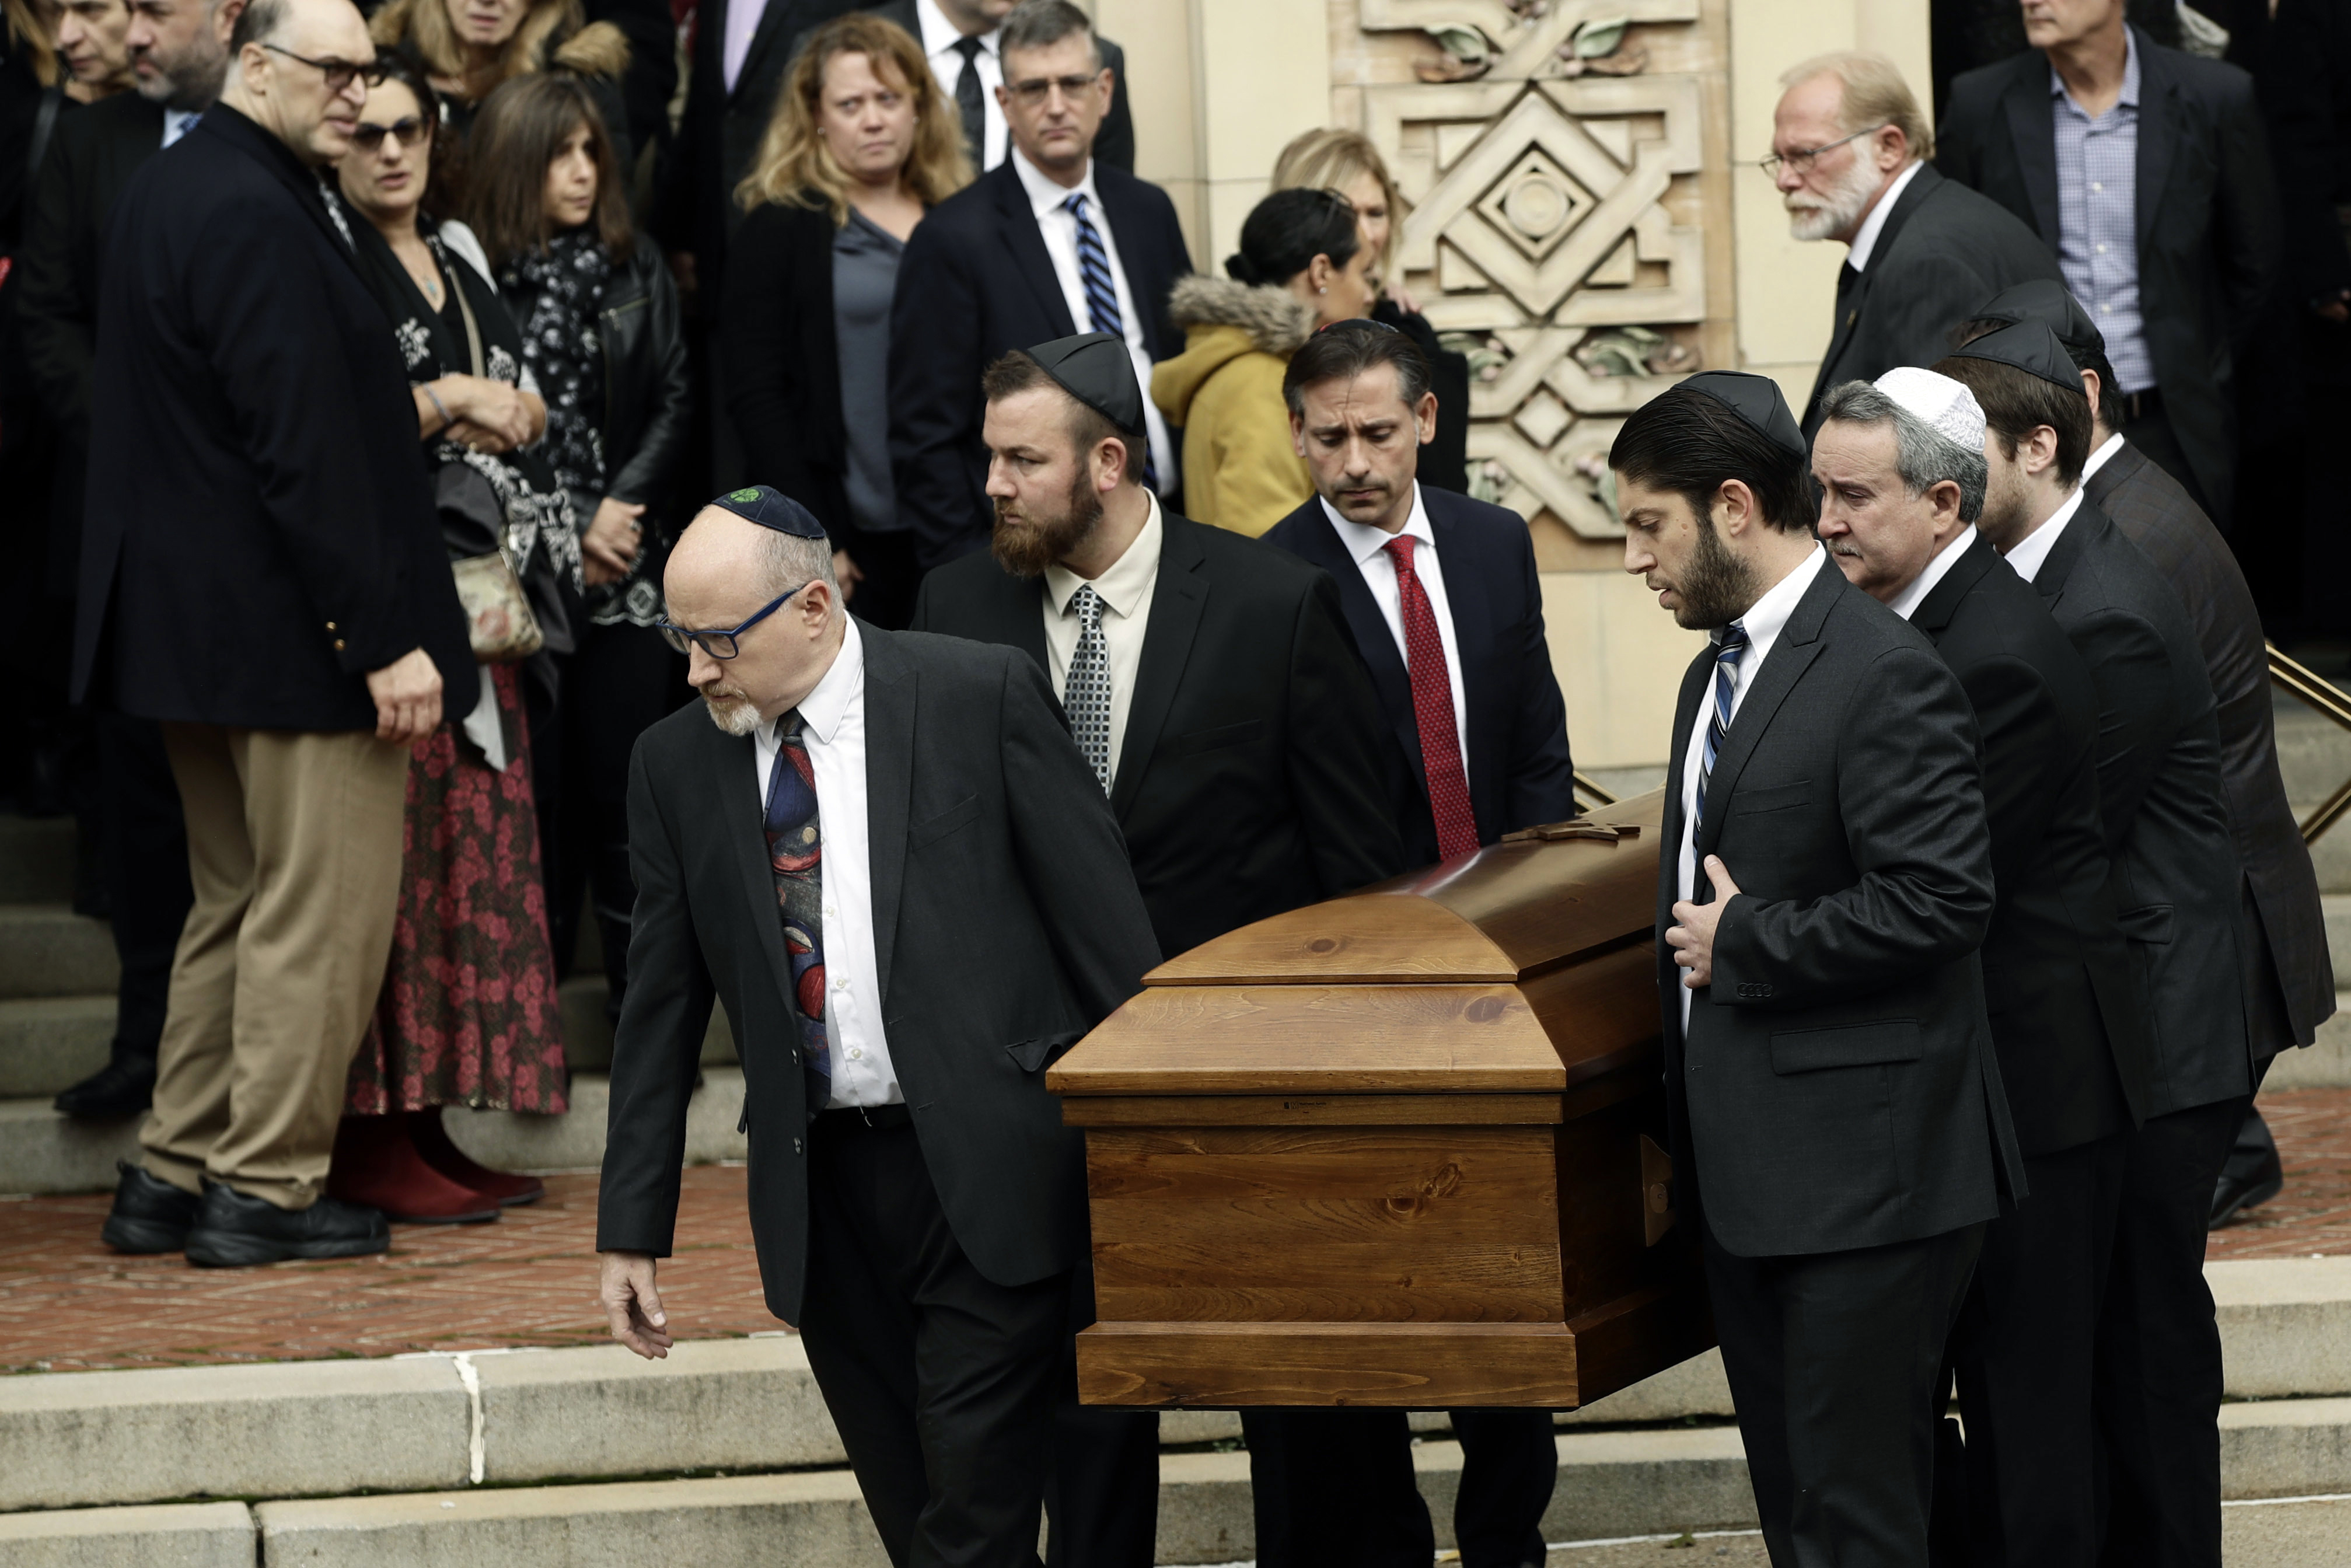 A casket is carried out of Rodef Shalom Congregation after the funeral services for brothers Cecil and David Rosenthal, in Pittsburgh.